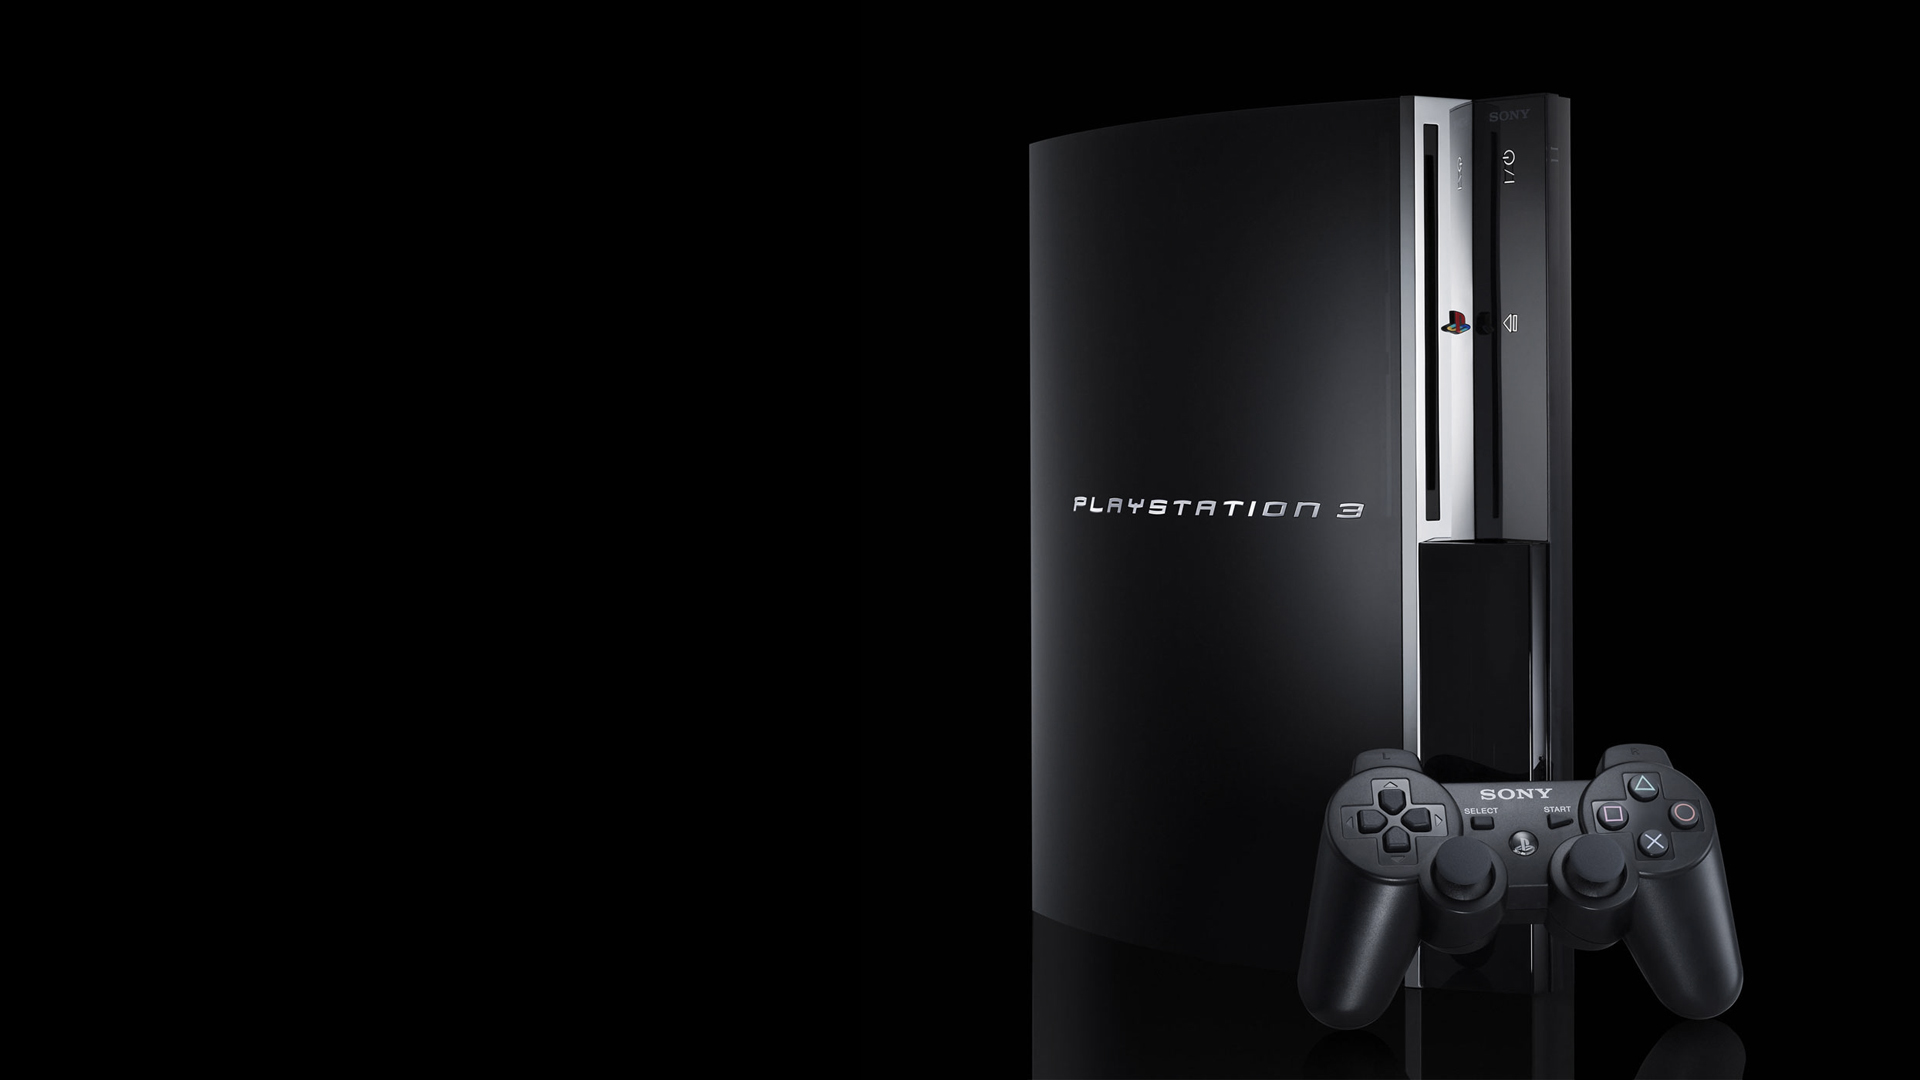 PS3 on Black Background Wallpapers